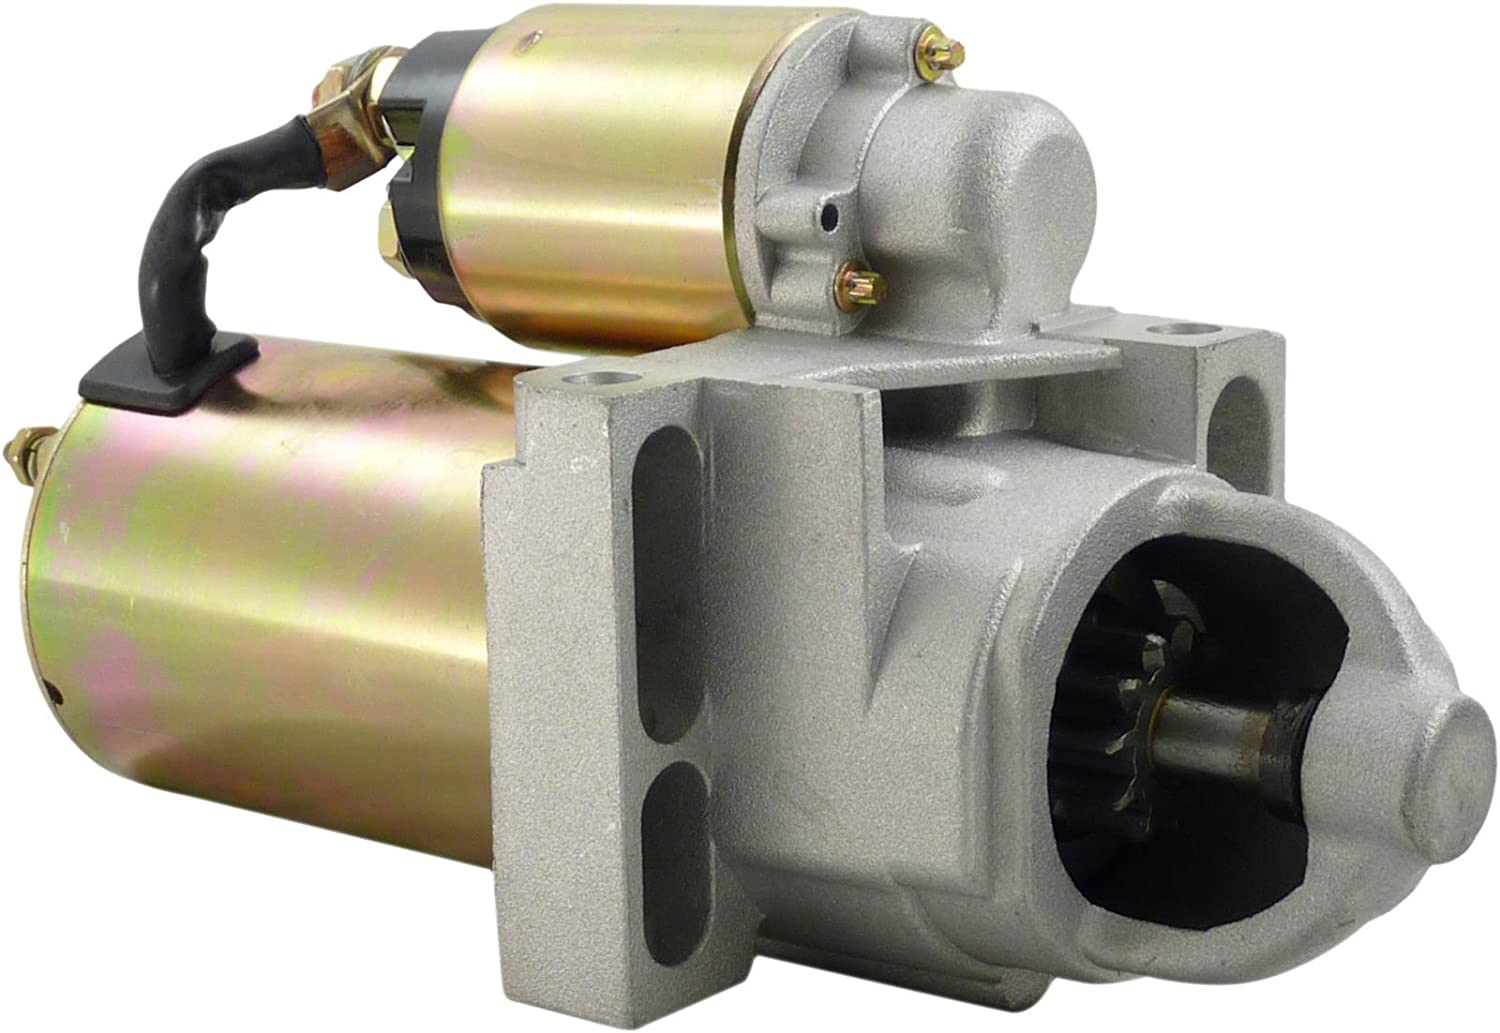 New STARTER SBC BBC Compatible Super beauty product restock quality top Max 71% OFF with Hig 3 CHEVY Performance High